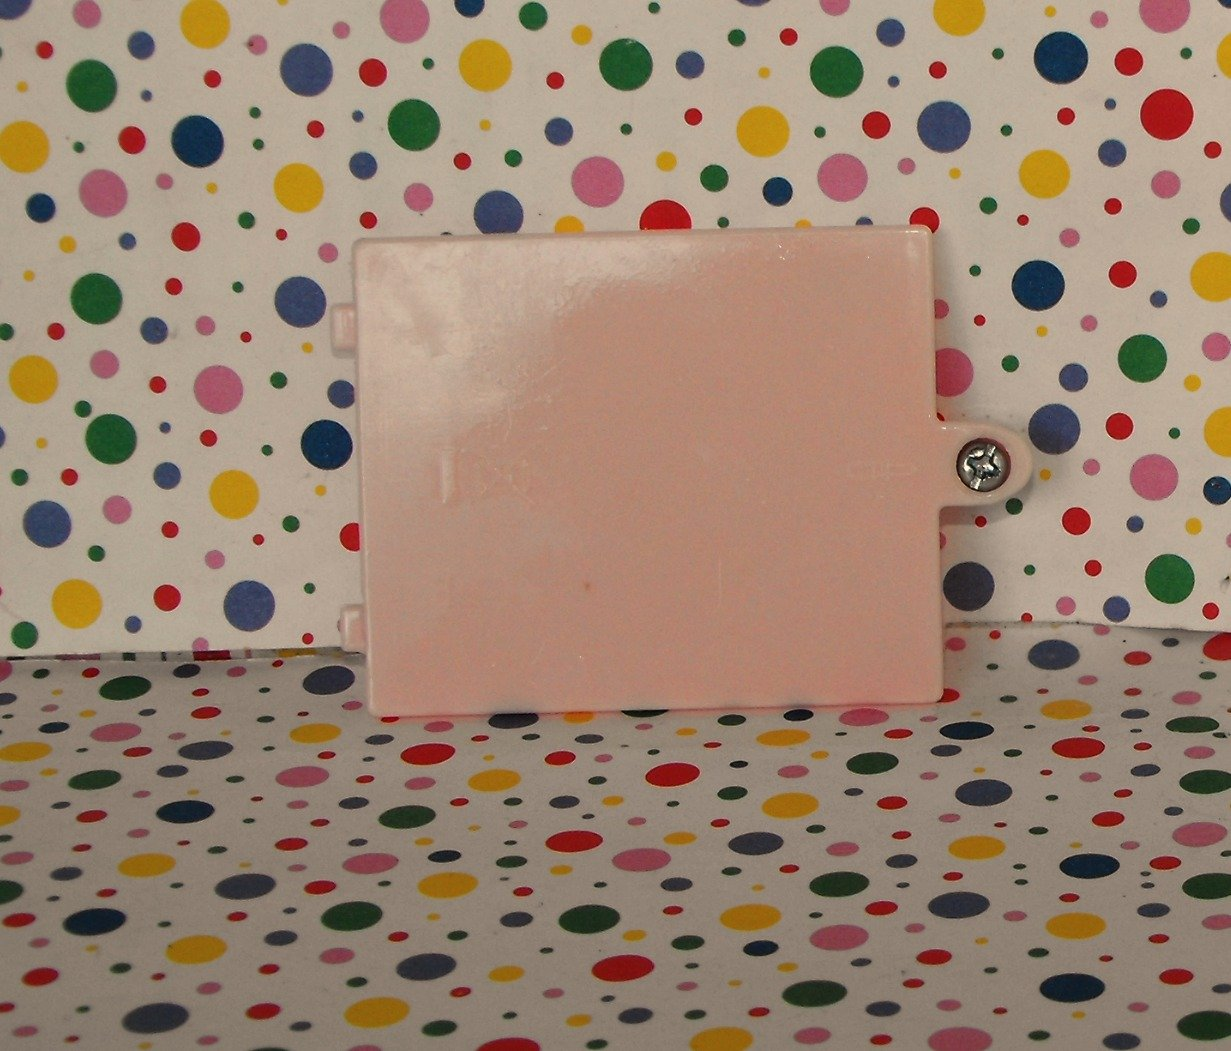 Barbie 3 Story Dream House Battery Cover Part